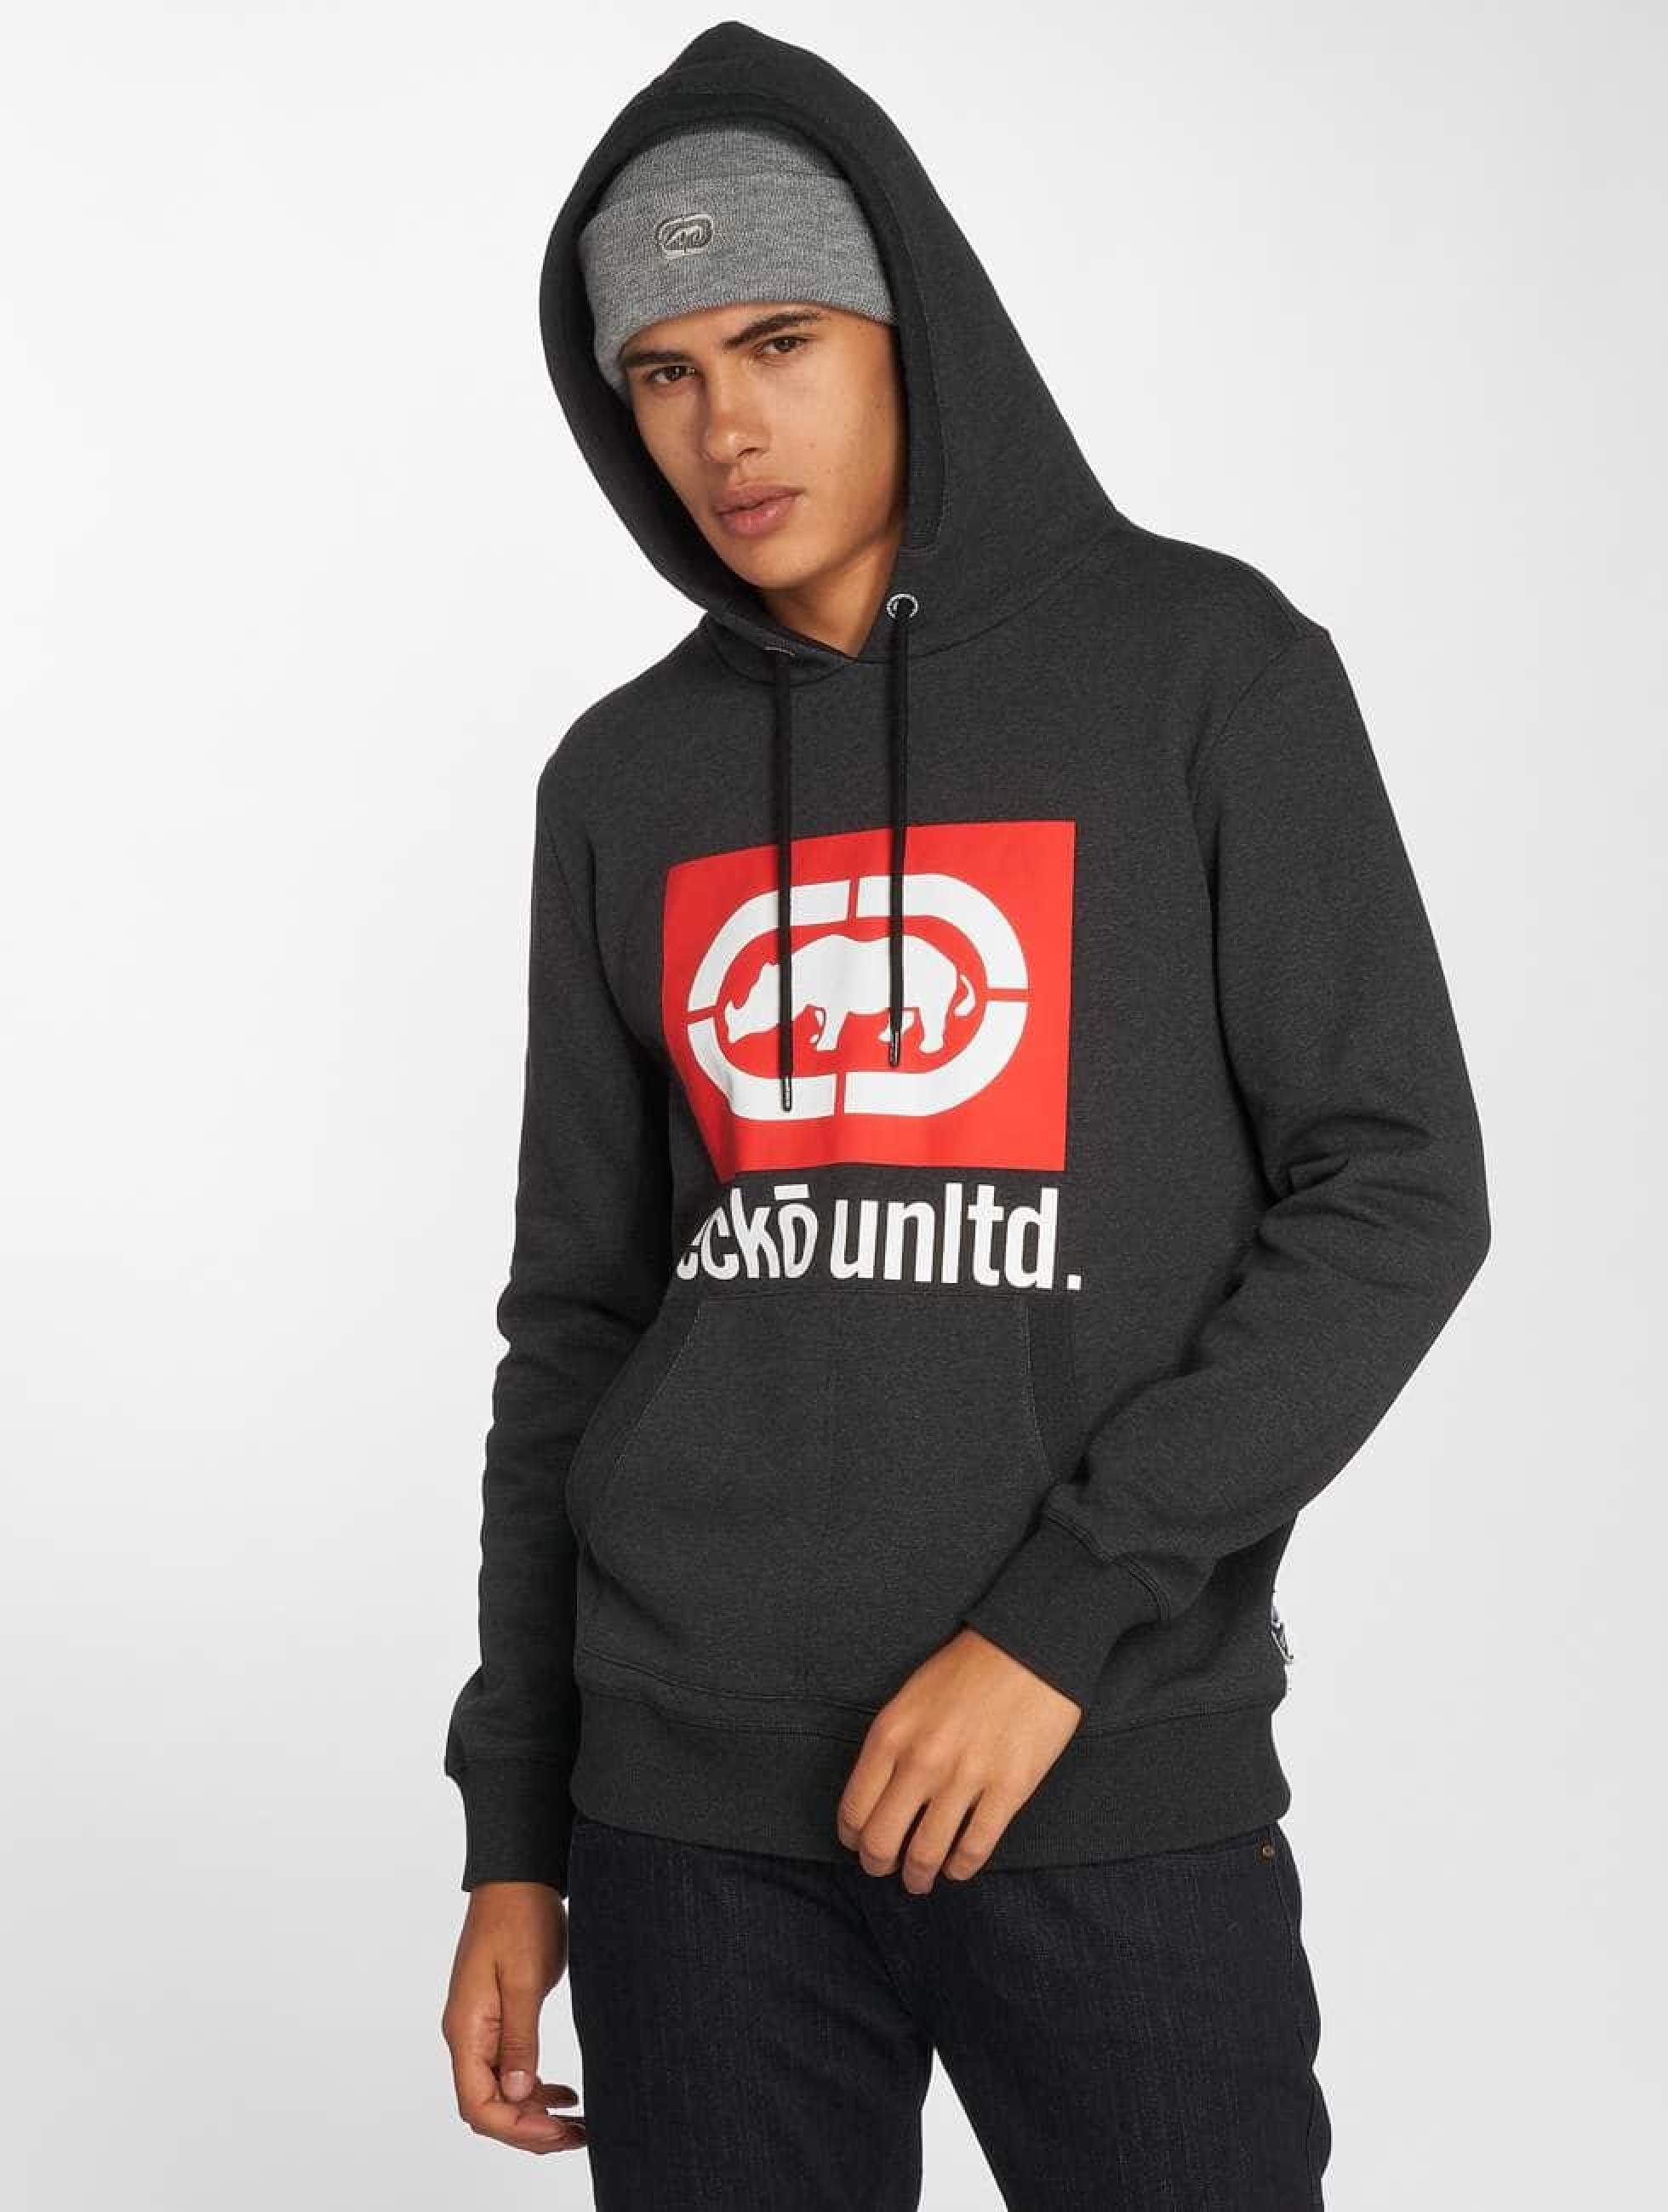 Ecko Unltd. / Hoodie West End in black 4XL